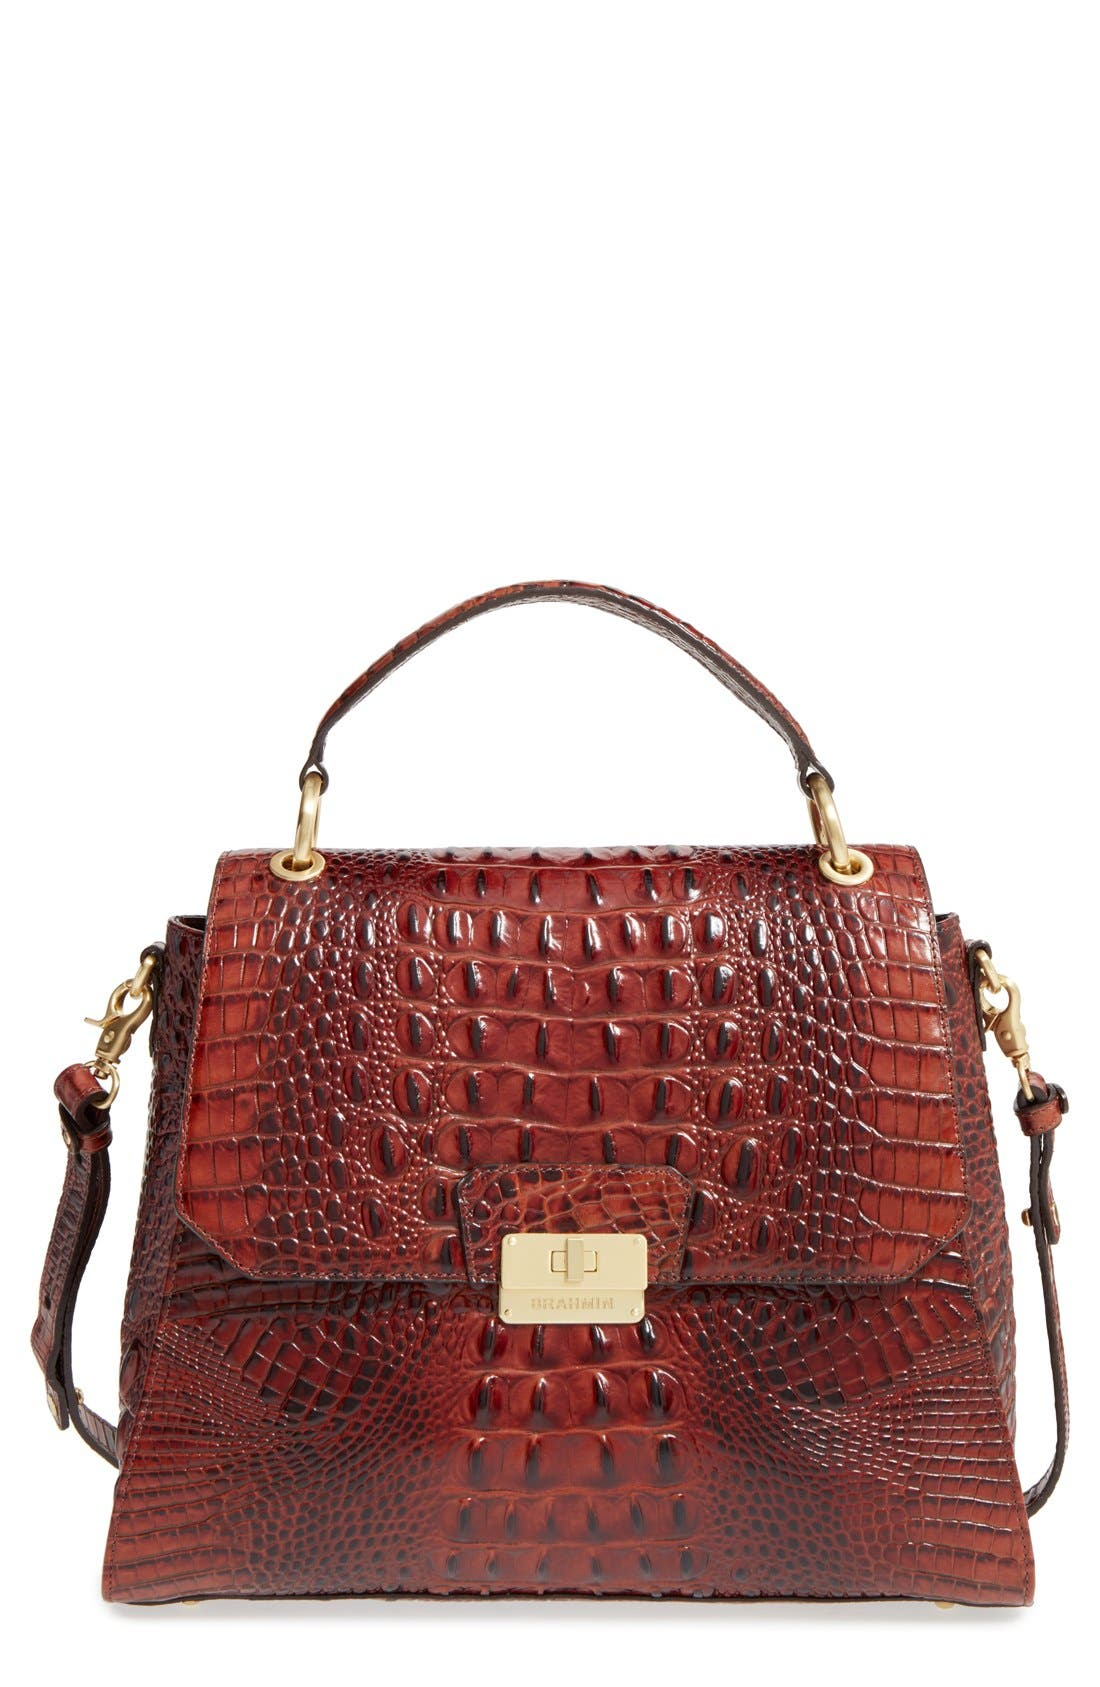 BRAHMIN 'Melbourne Brinley' Croc Embossed Leather Top Handle